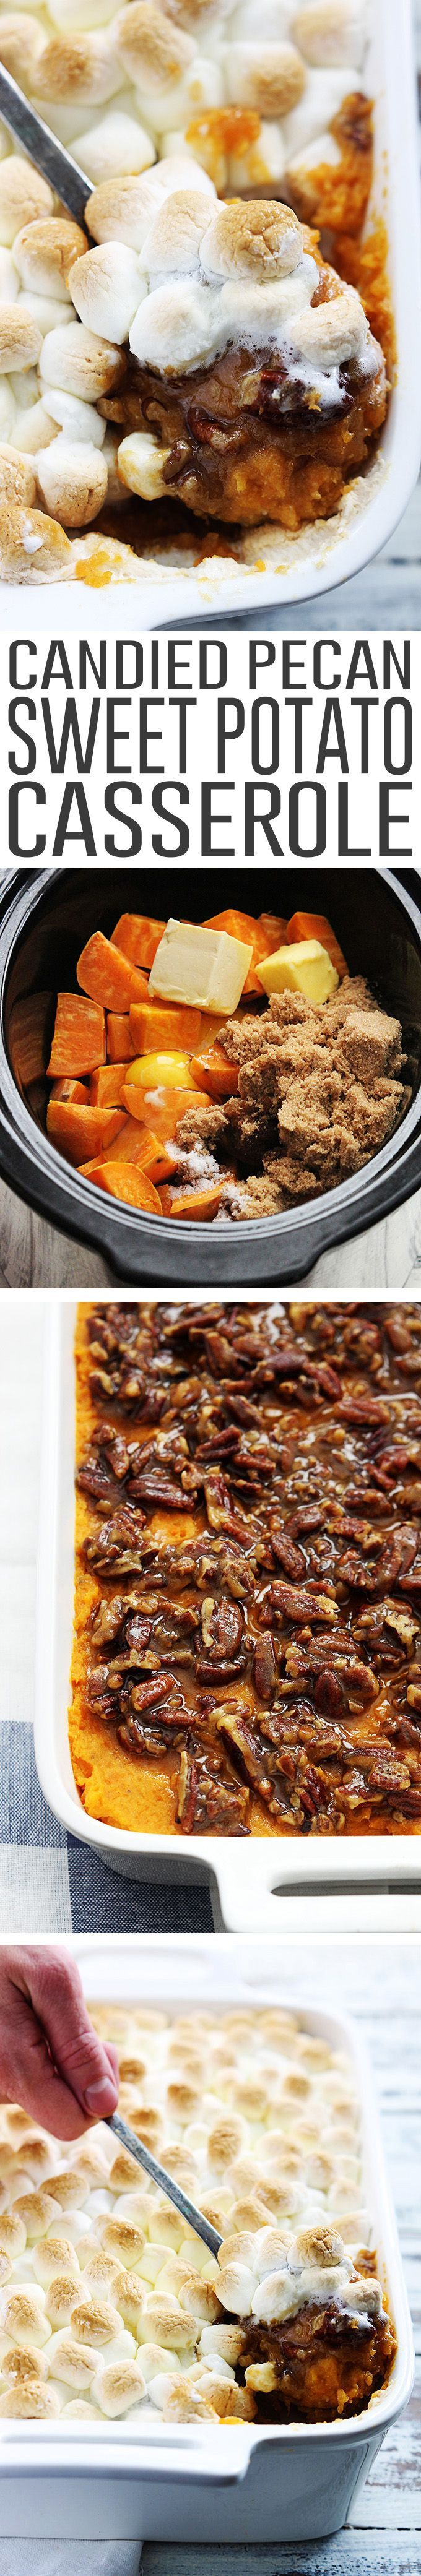 Creamy sweet potato casserole with a crunchy candied pecan topping and toasted marshmallows.